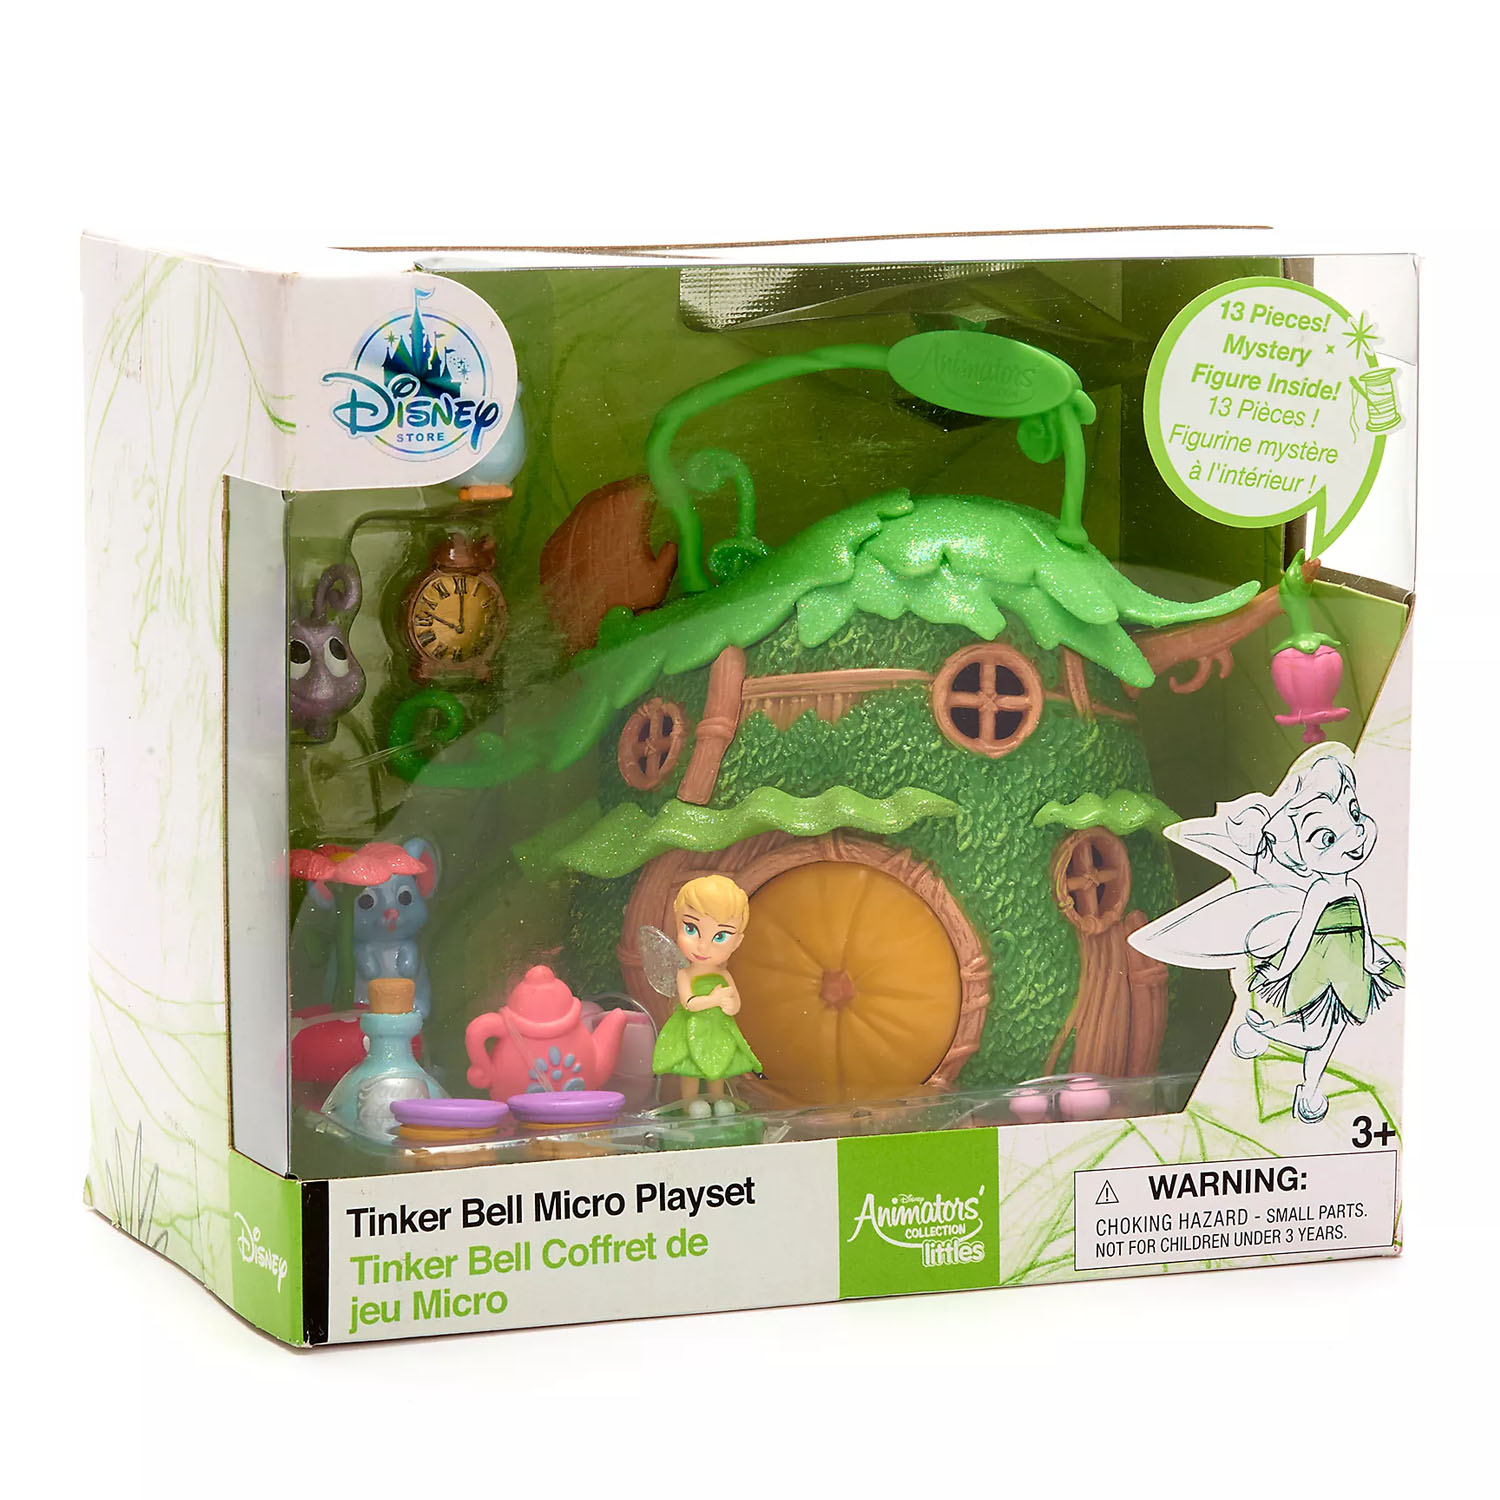 Tinker Bell Micro Playset Disney Animators' Collection Littles